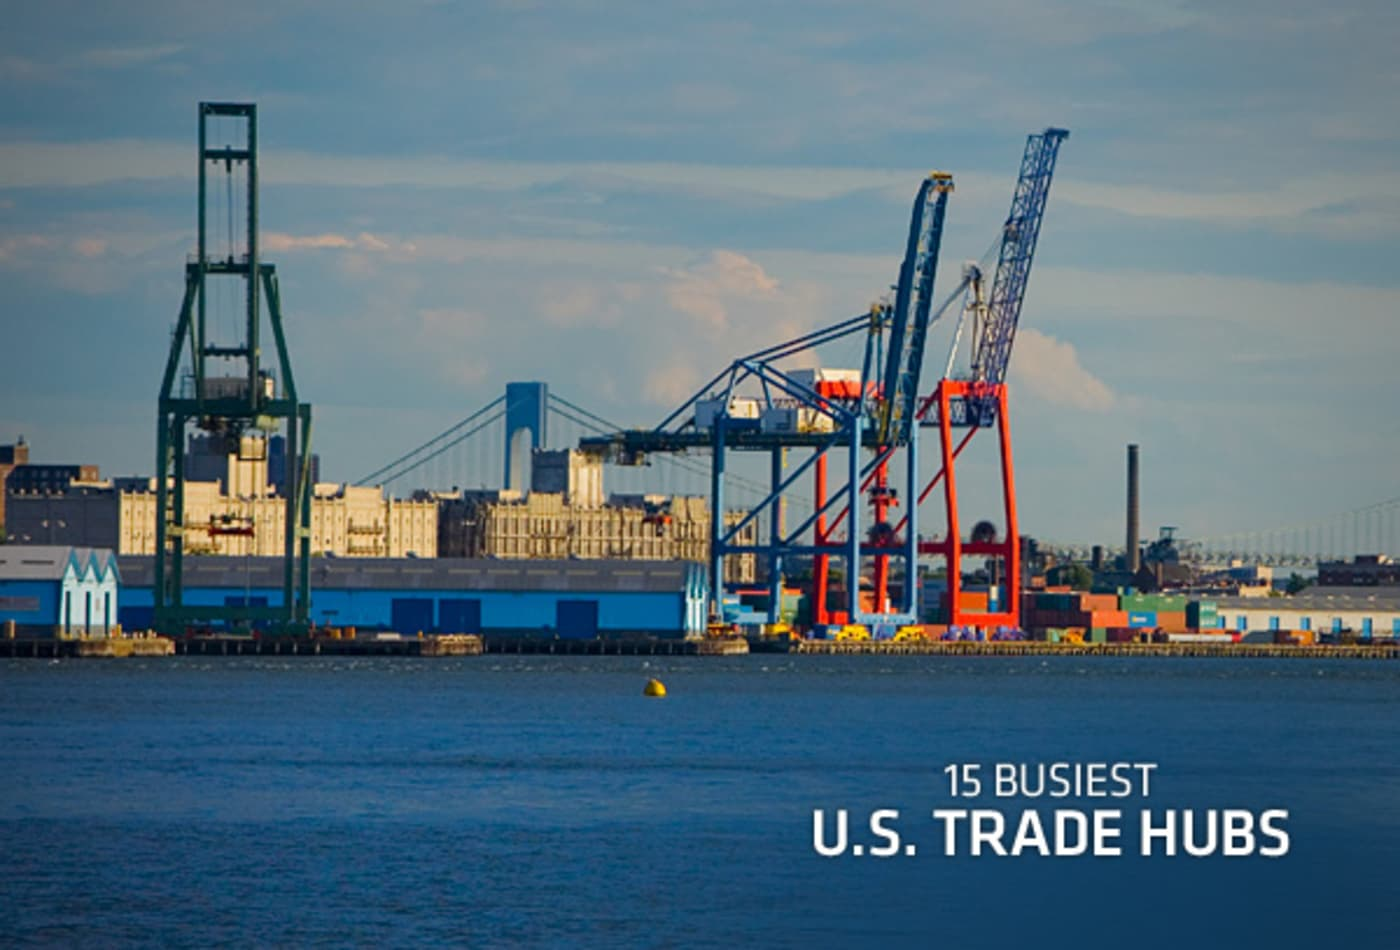 15-Busiest-US-Trade-Hubs-cover.jpg